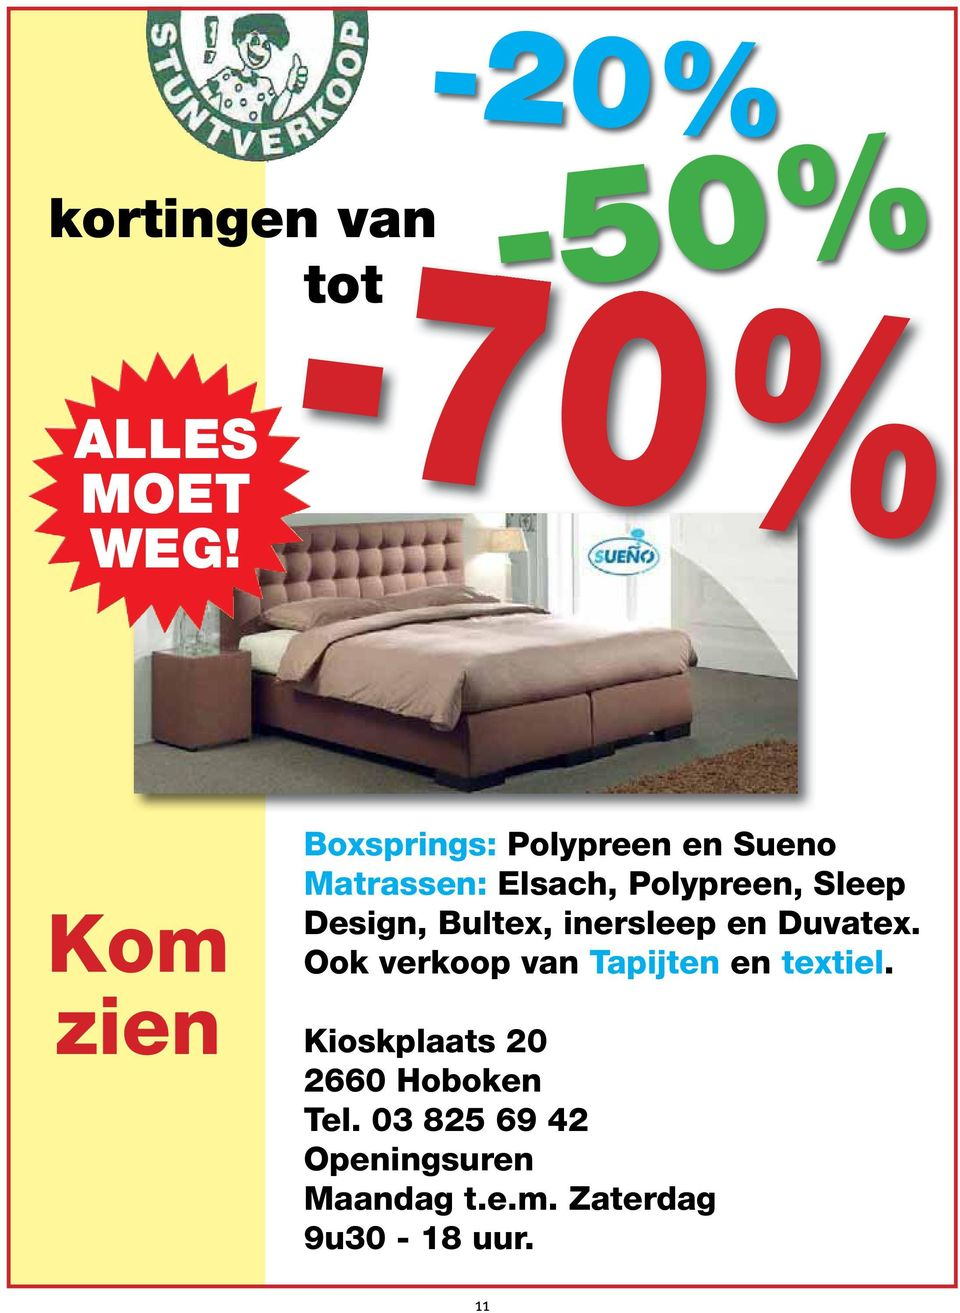 Polypreen, Sleep Design, Bultex, inersleep en Duvatex.